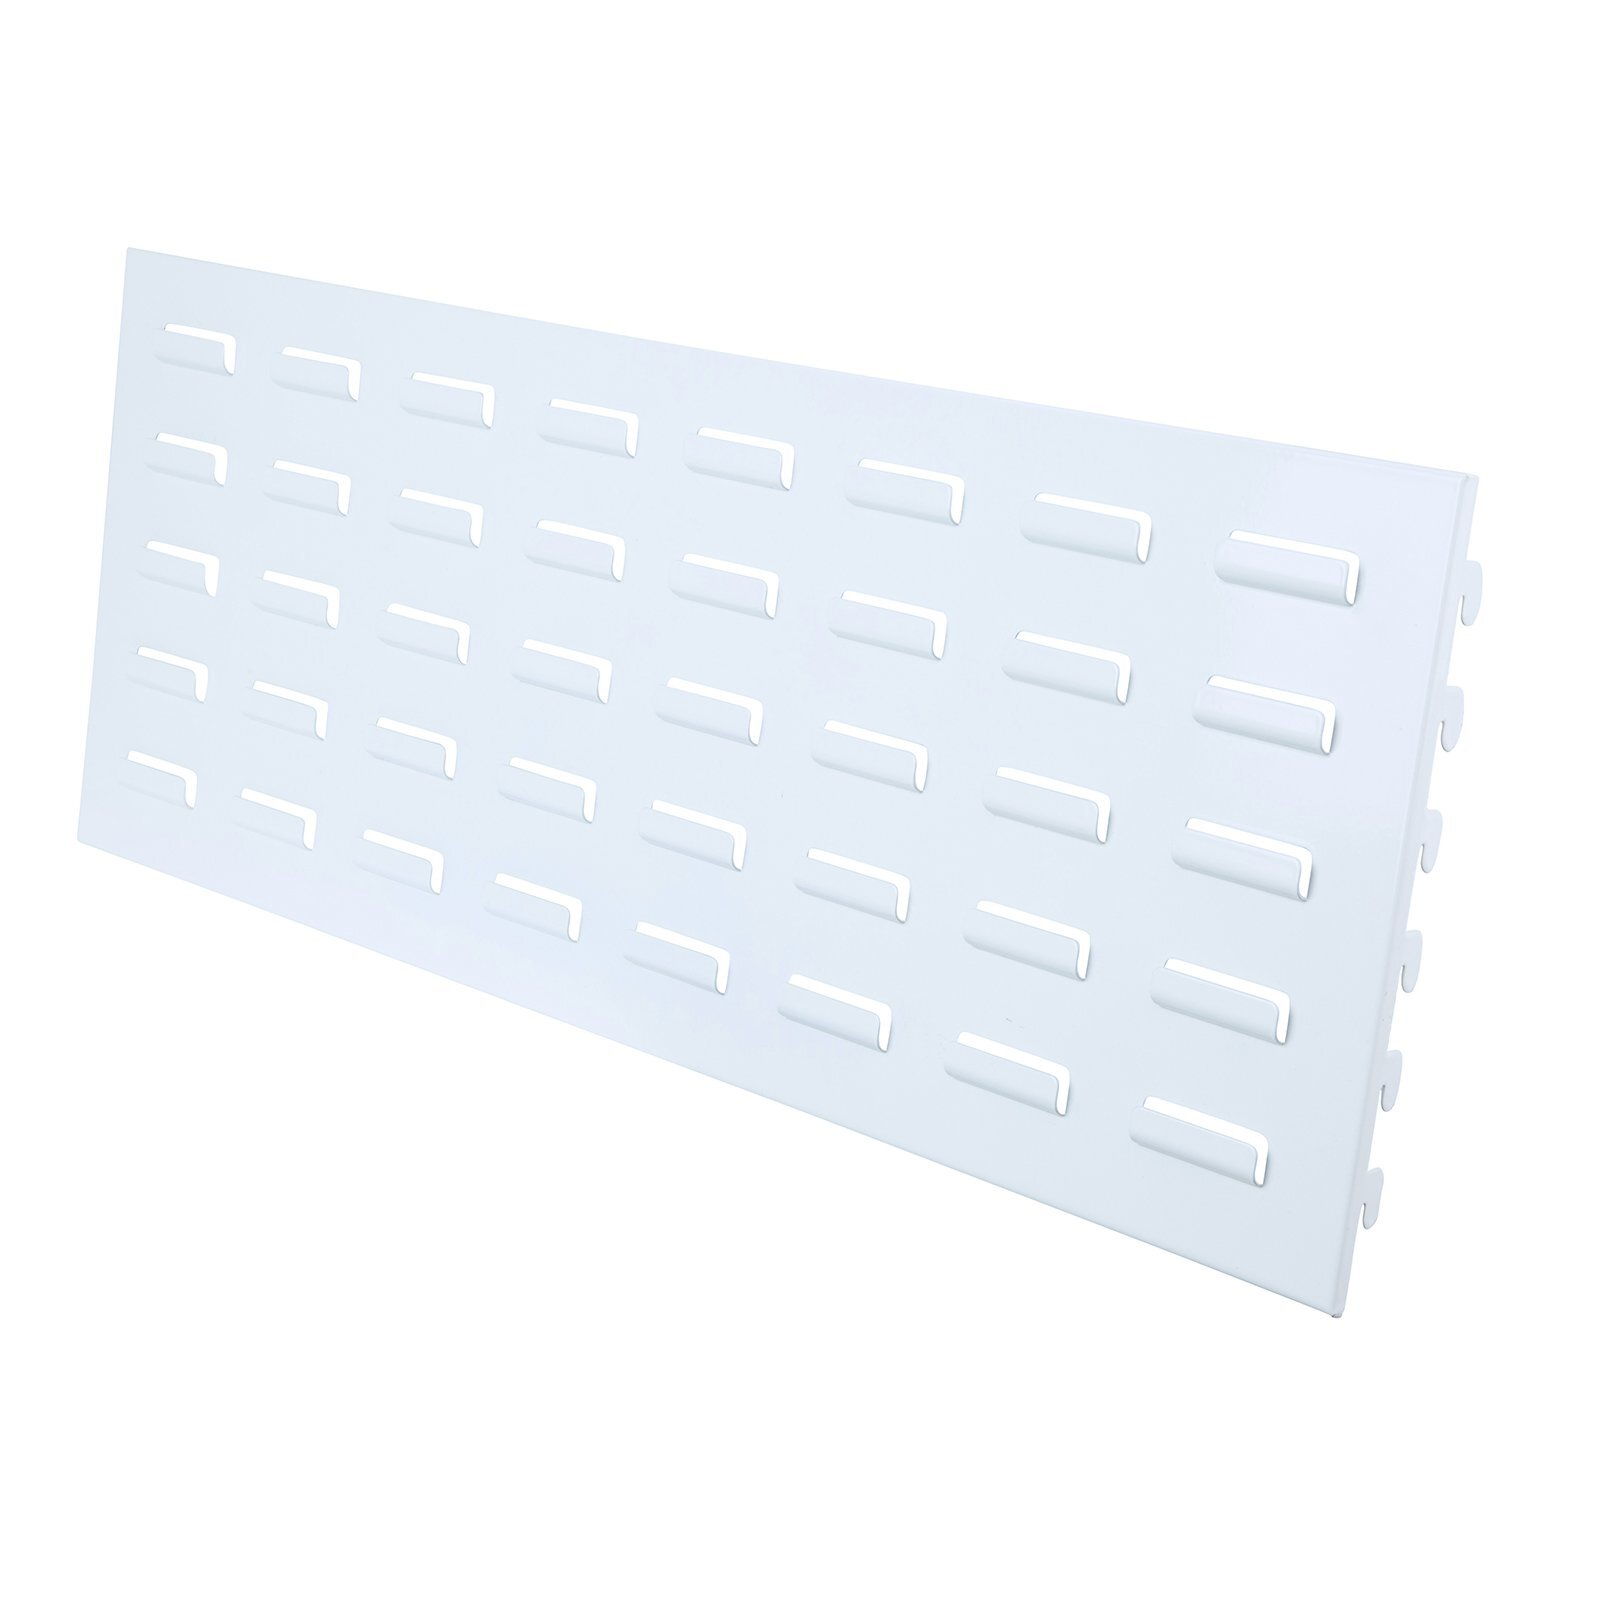 Flexi Storage 572 x 200mm Tote Board Backing Plate